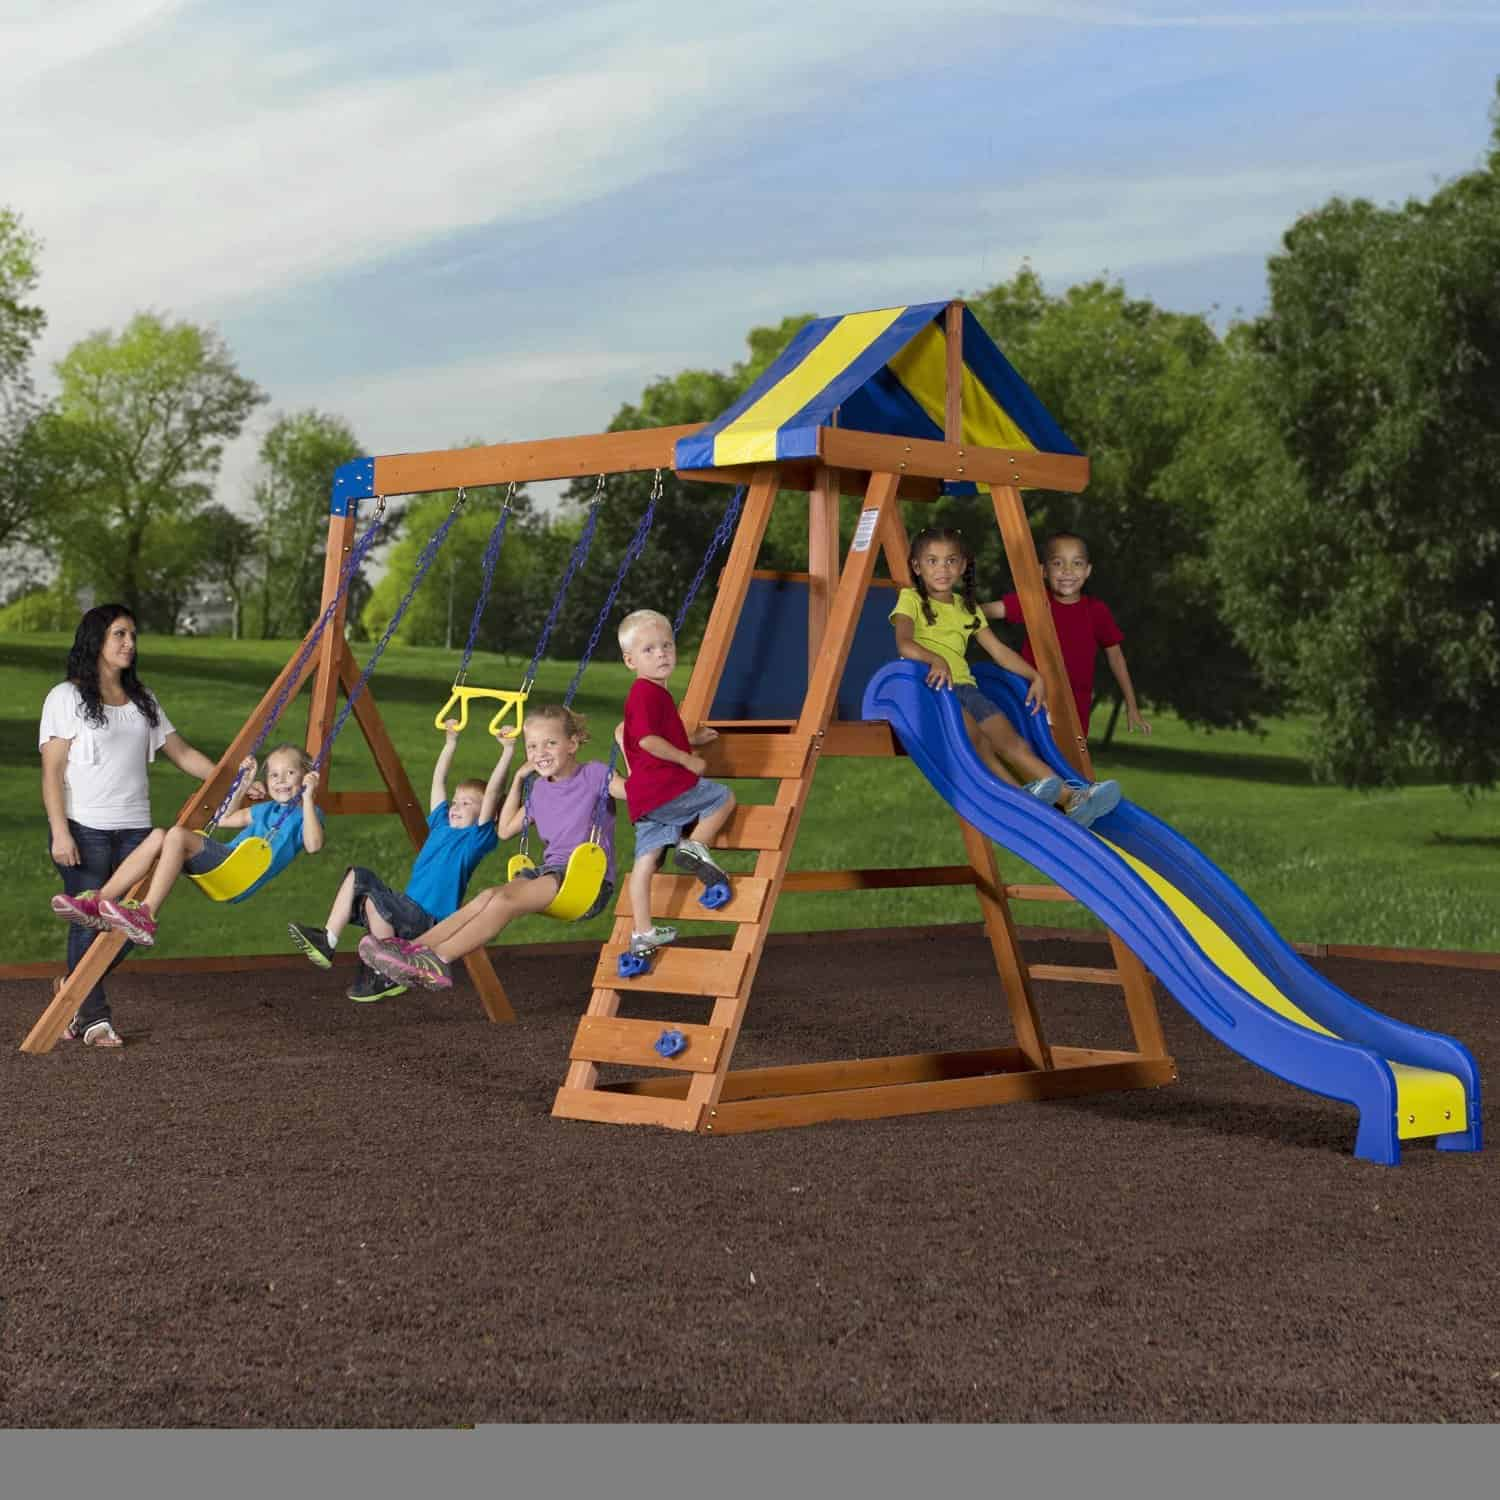 cedar playground fascinating kmart lifetime best swing kids the sets patio playsets accessories prices of red small lowes set me backyard